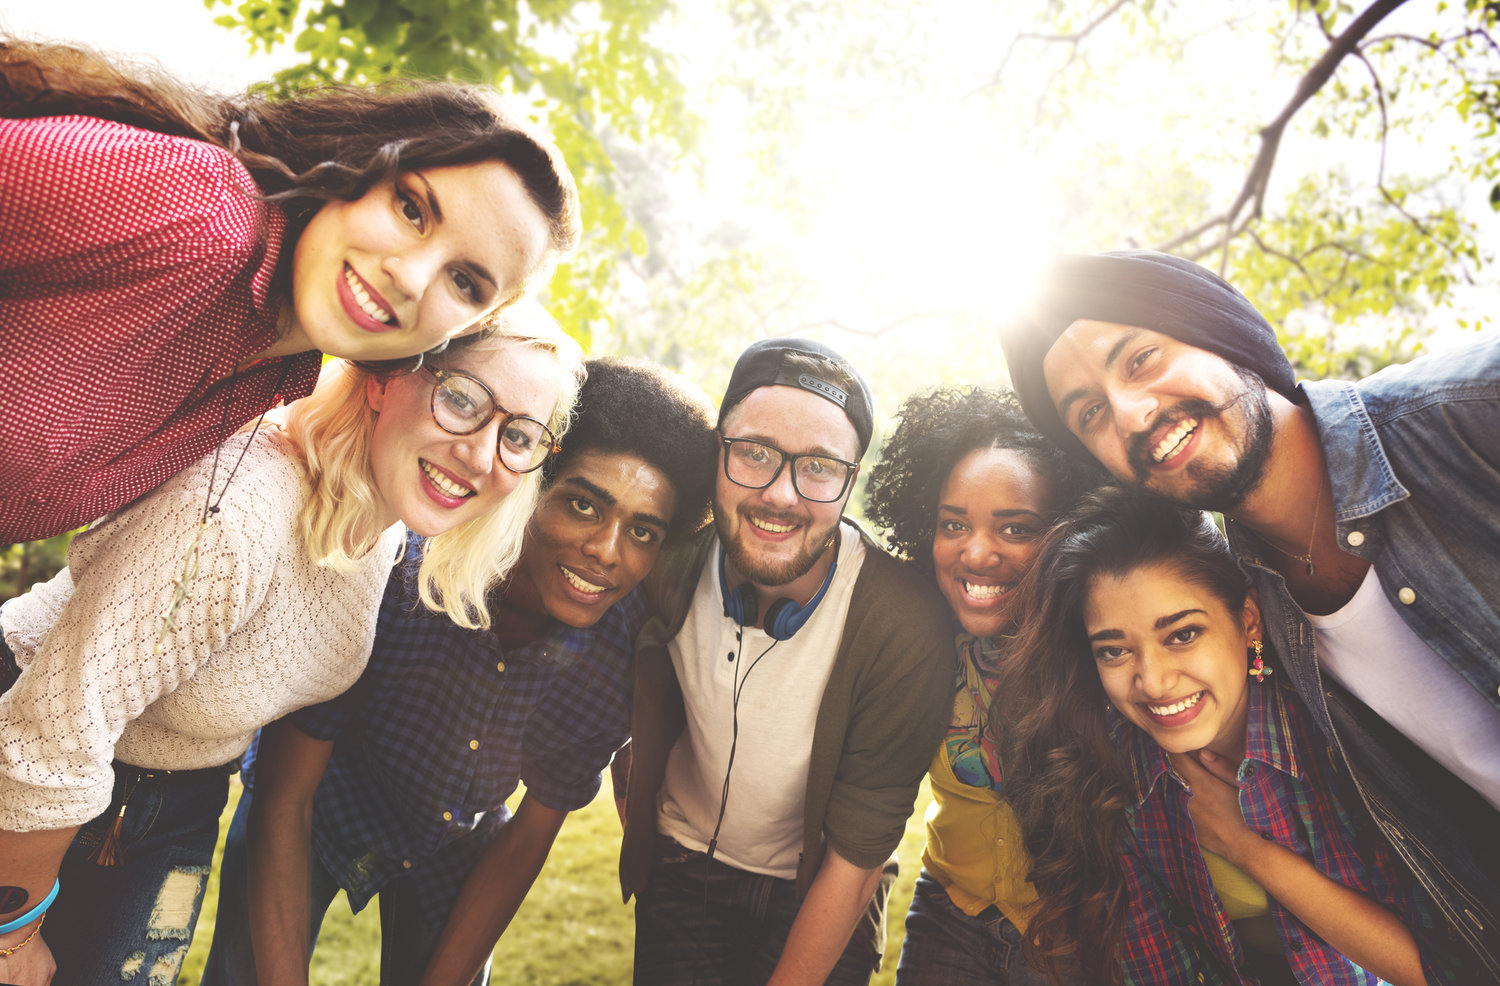 Join our Team! - We currently seeking to hire skilled independent contractors to join our fabulous team of Couples and Marriage Counselors, Sex Therapists, Sexual Empowerment Coaches, Clinical Sexologists, Relationship Coaches, Holistic Healers & Trauma-Informed Body Workers. We are committed to diversity and consideration of all applicants for the position(s). We encourage POC & LGBTQIA+ applicants of diverse backgrounds to apply.